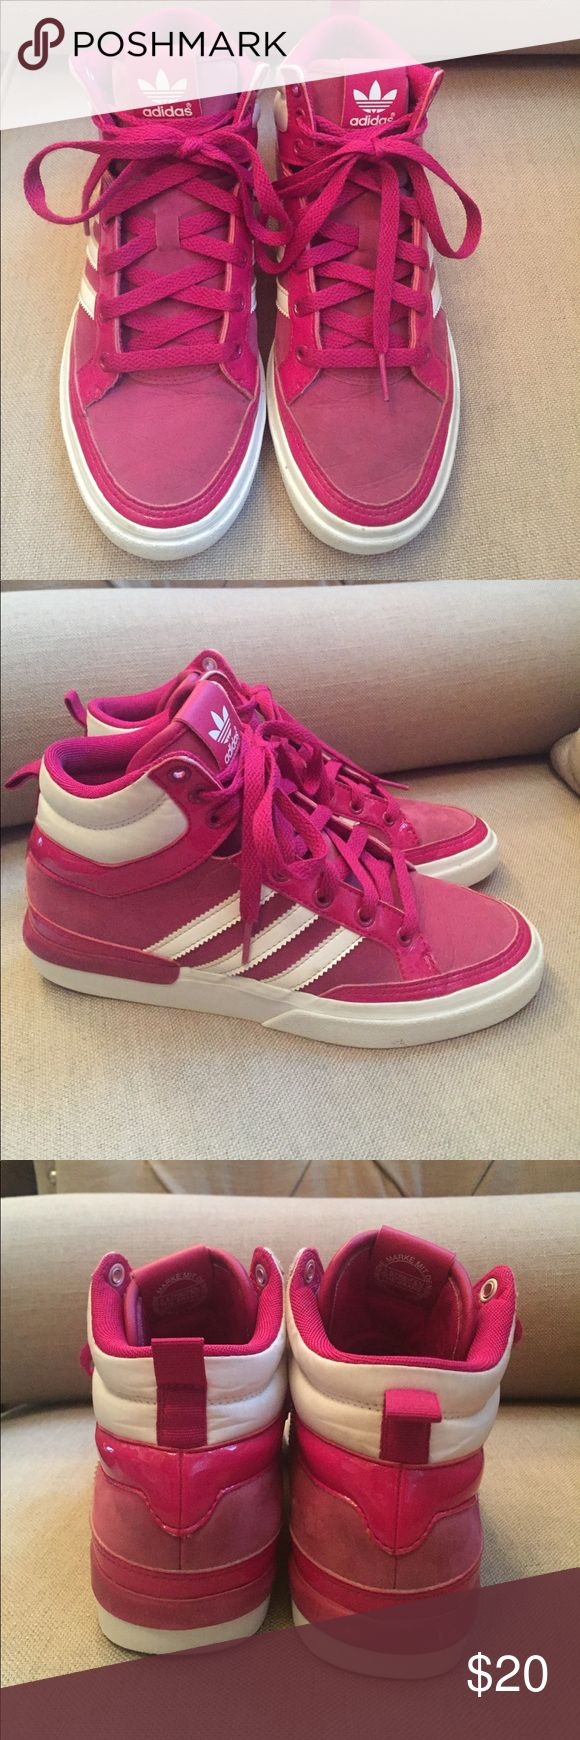 Adidas sneaker Fuchsia  color high tops. Very cute. Worn for a full season. They are a 5 kids but fit like a  6 1/2 woman's Adidas Shoes Sneakers